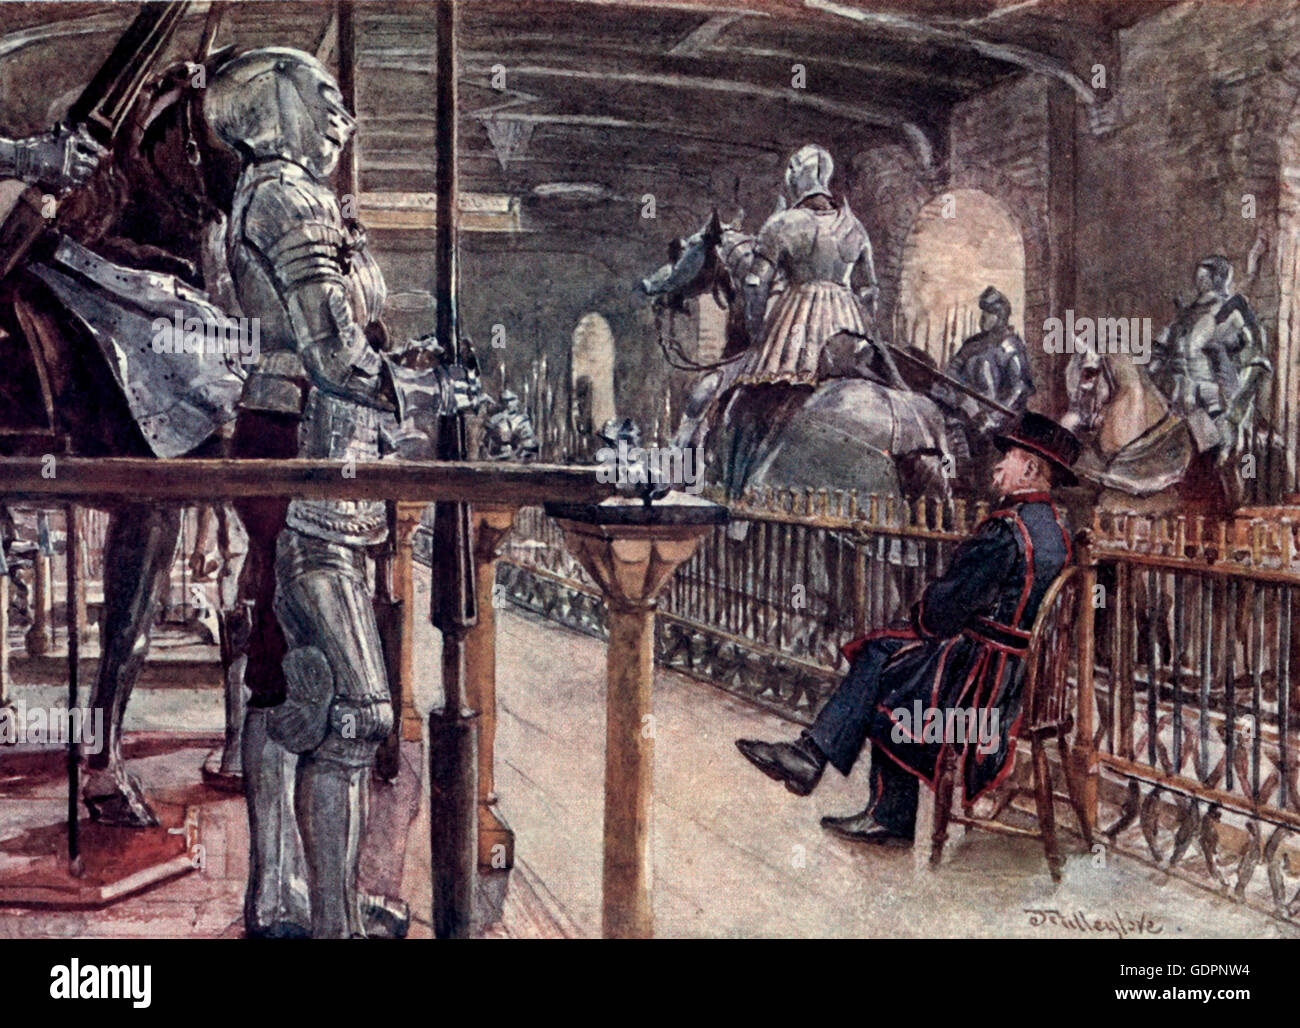 Portion of the Armoury - White Tower - Tower of London, circa 1908 - Stock Image